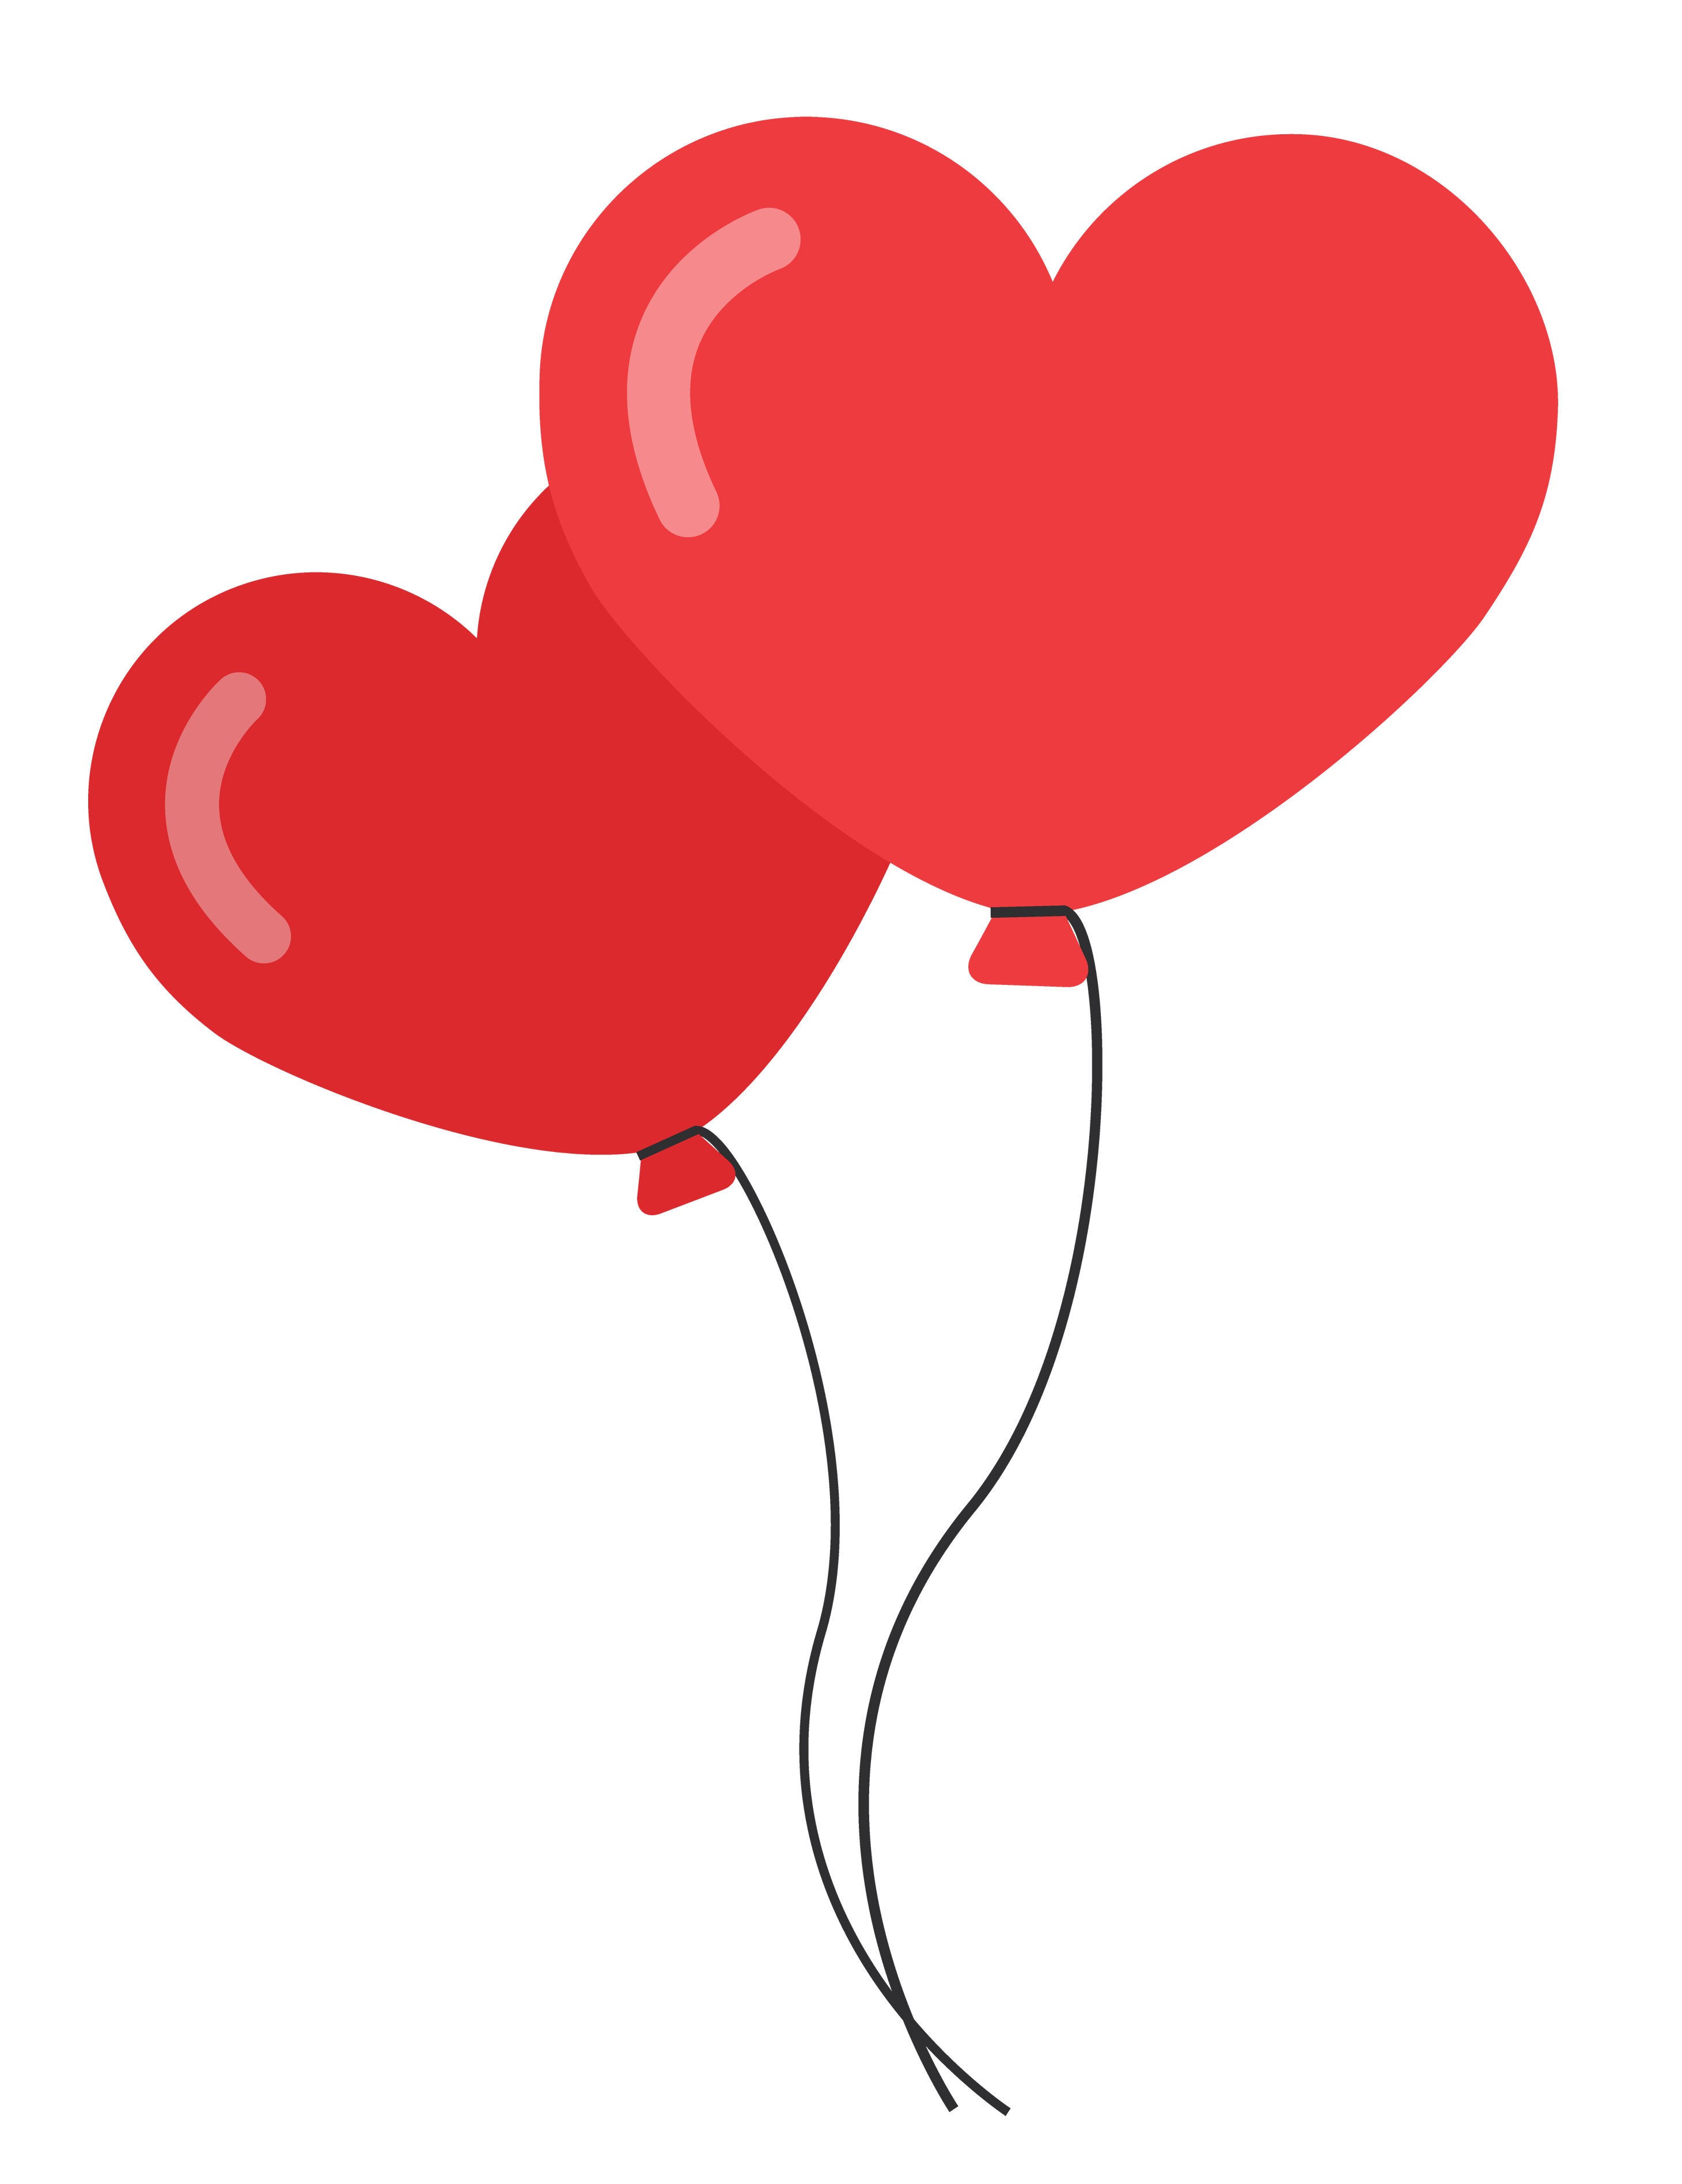 Heart Shaped Balloons PNG image - PngPix